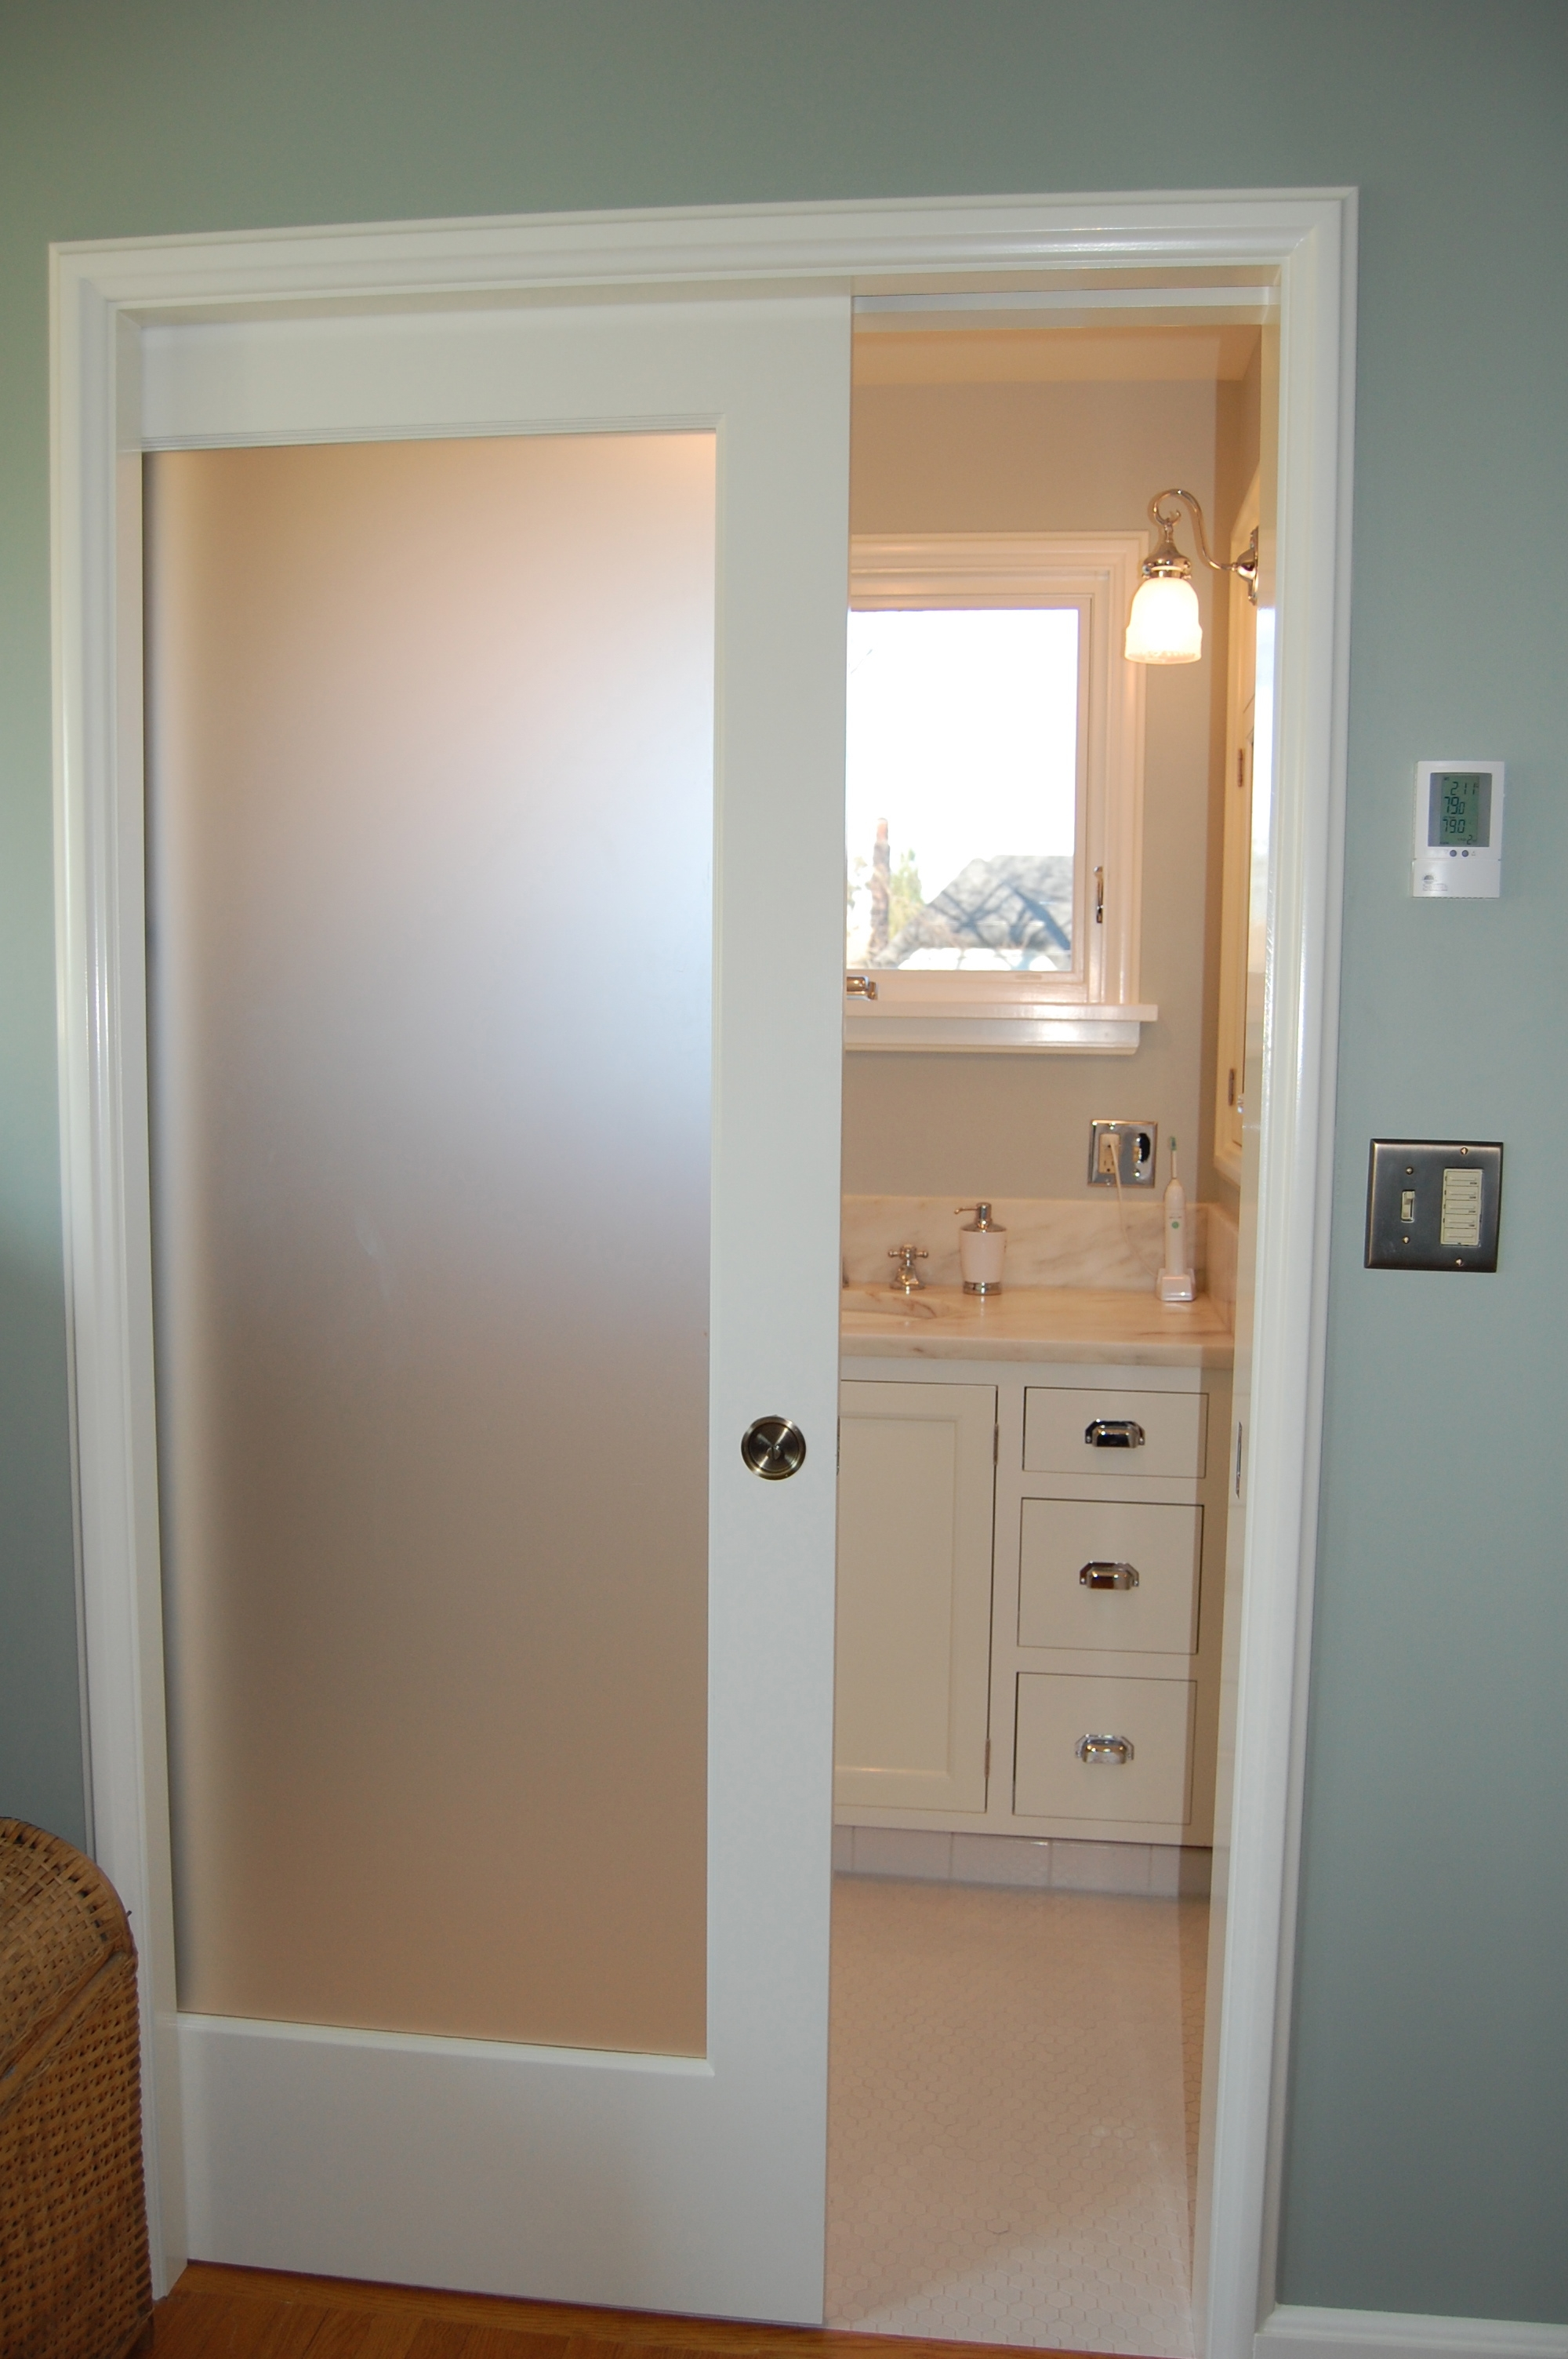 Bathroom Interior Doors With Glass